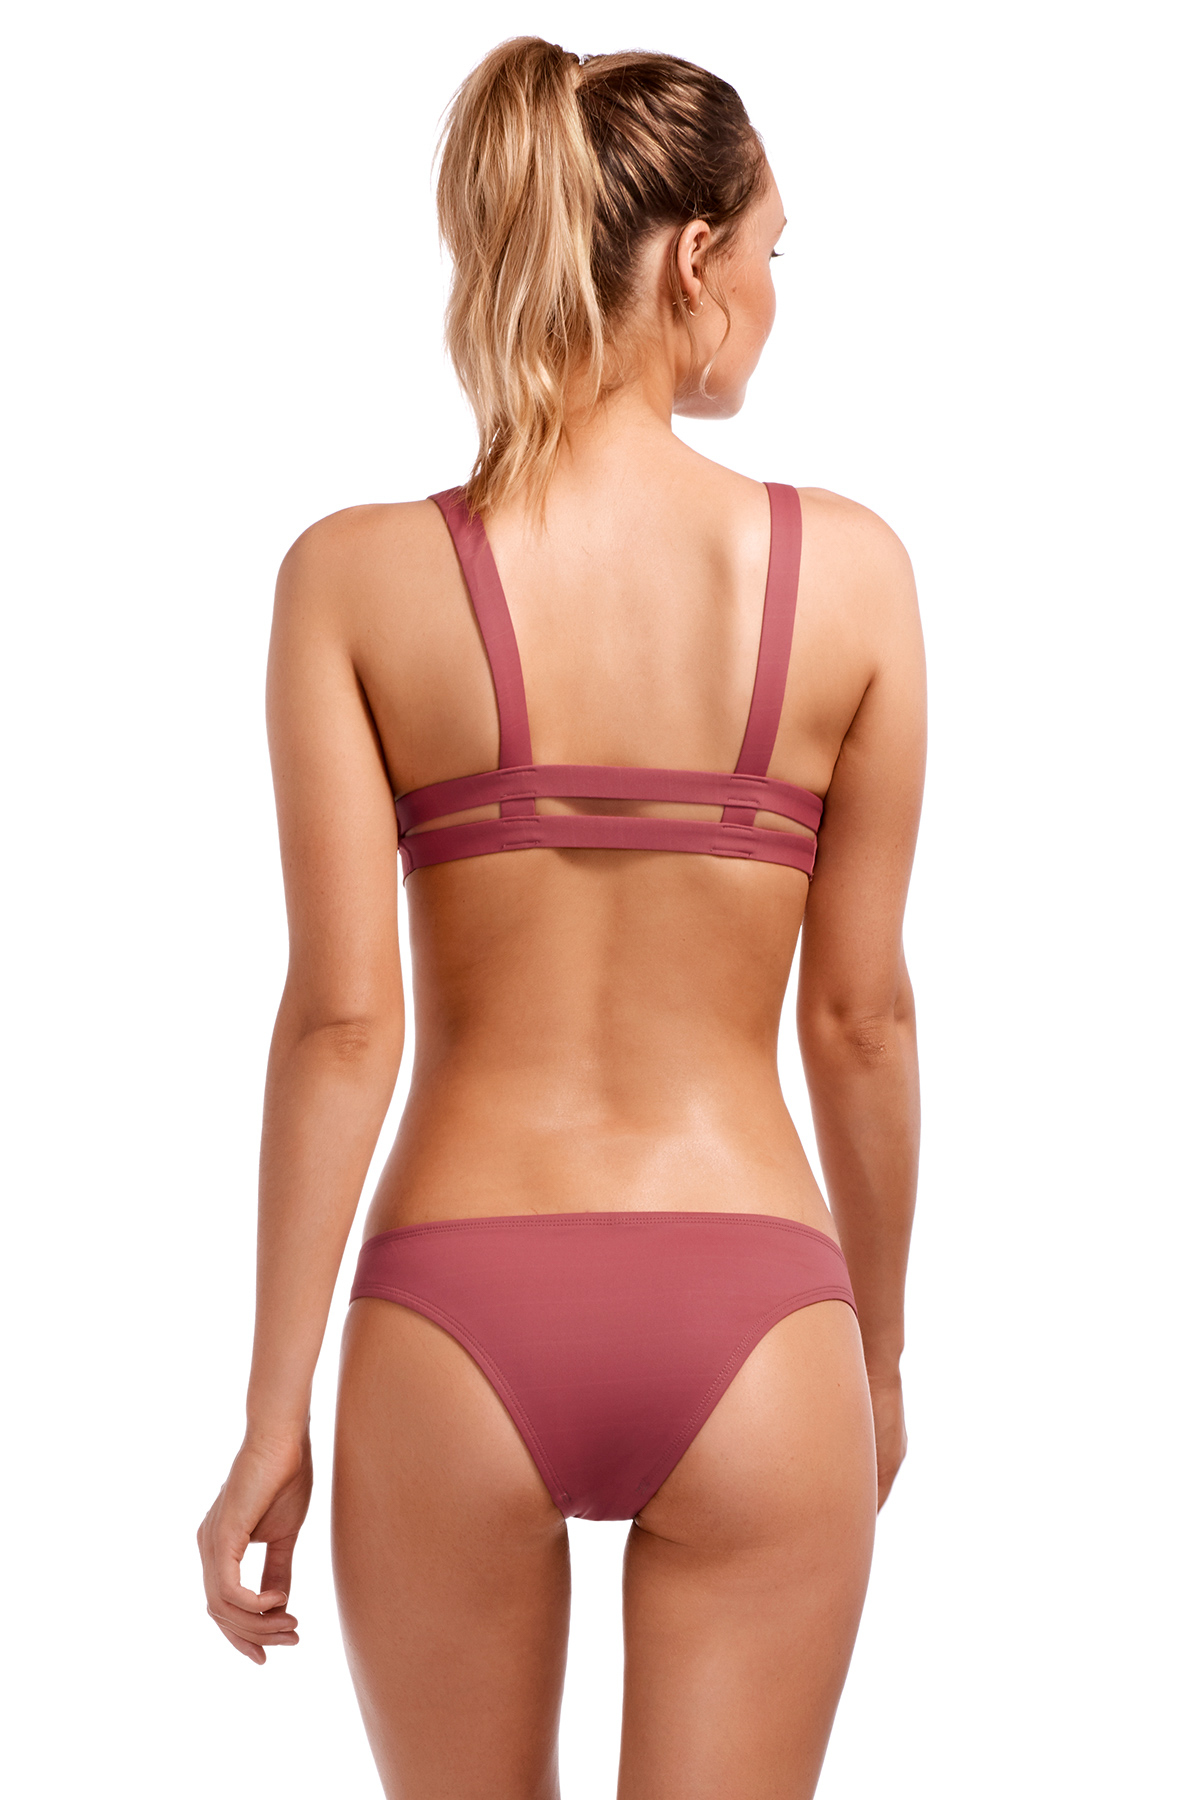 Neutra Bralette Banded Triangle Bikini Top - Havana Rose 2